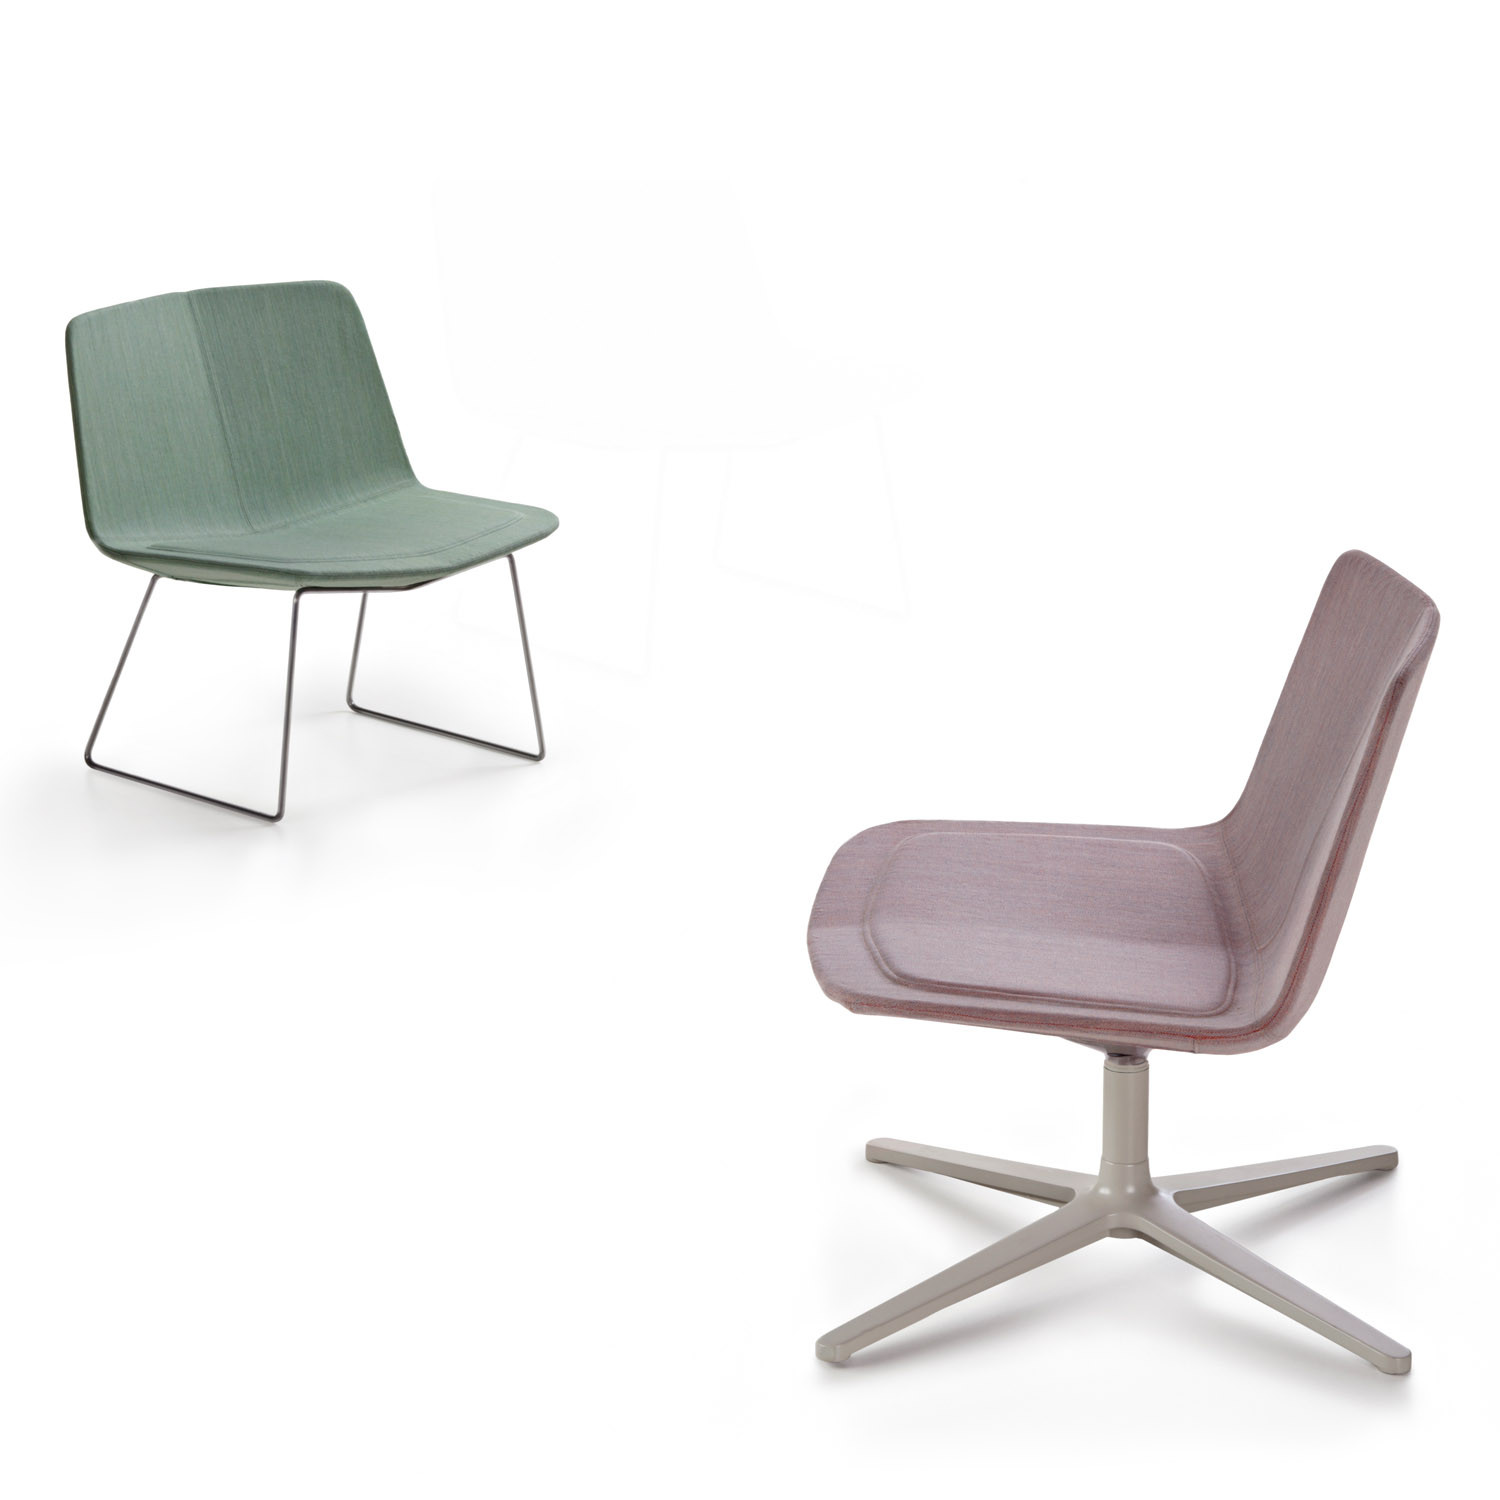 MaxDesign Stratos Lounge Chairs